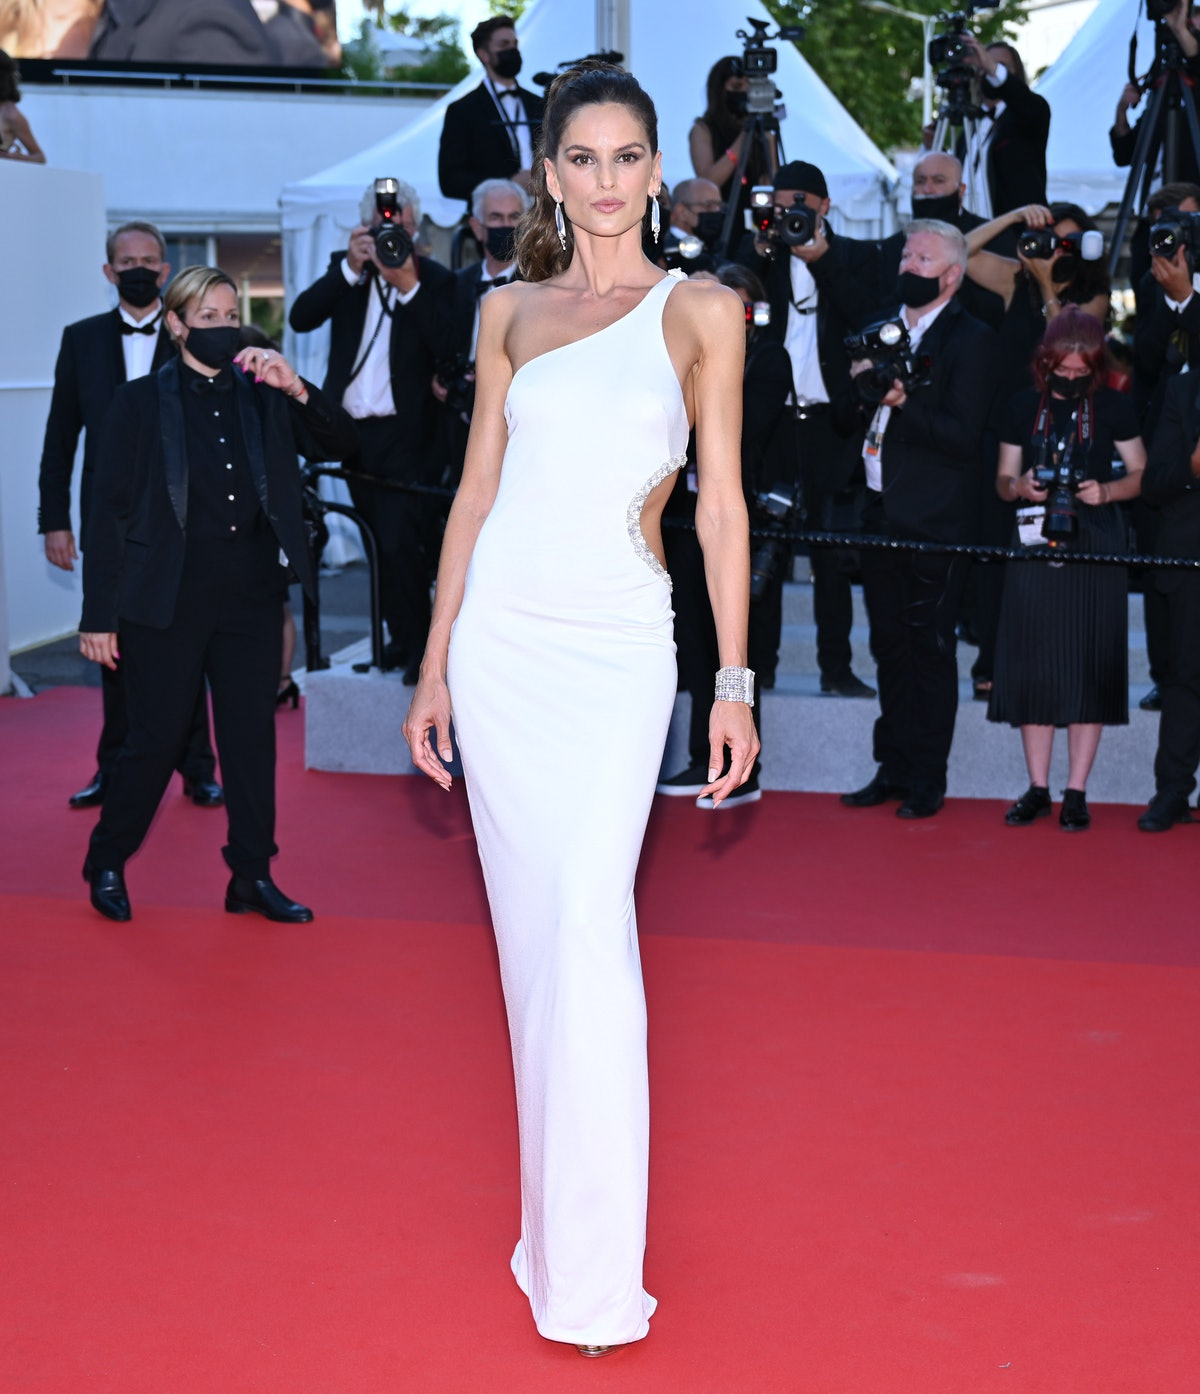 CANNES, FRANCE - JULY 09: Brazilian model Izabel Goulart arrives for the screening of The film âBenedetta' in the competition at the 74th annual Cannes Film Festival in Cannes, France on July 09, 2021 (Photo by Mustafa Yalcin/Anadolu Agency via Getty Images)